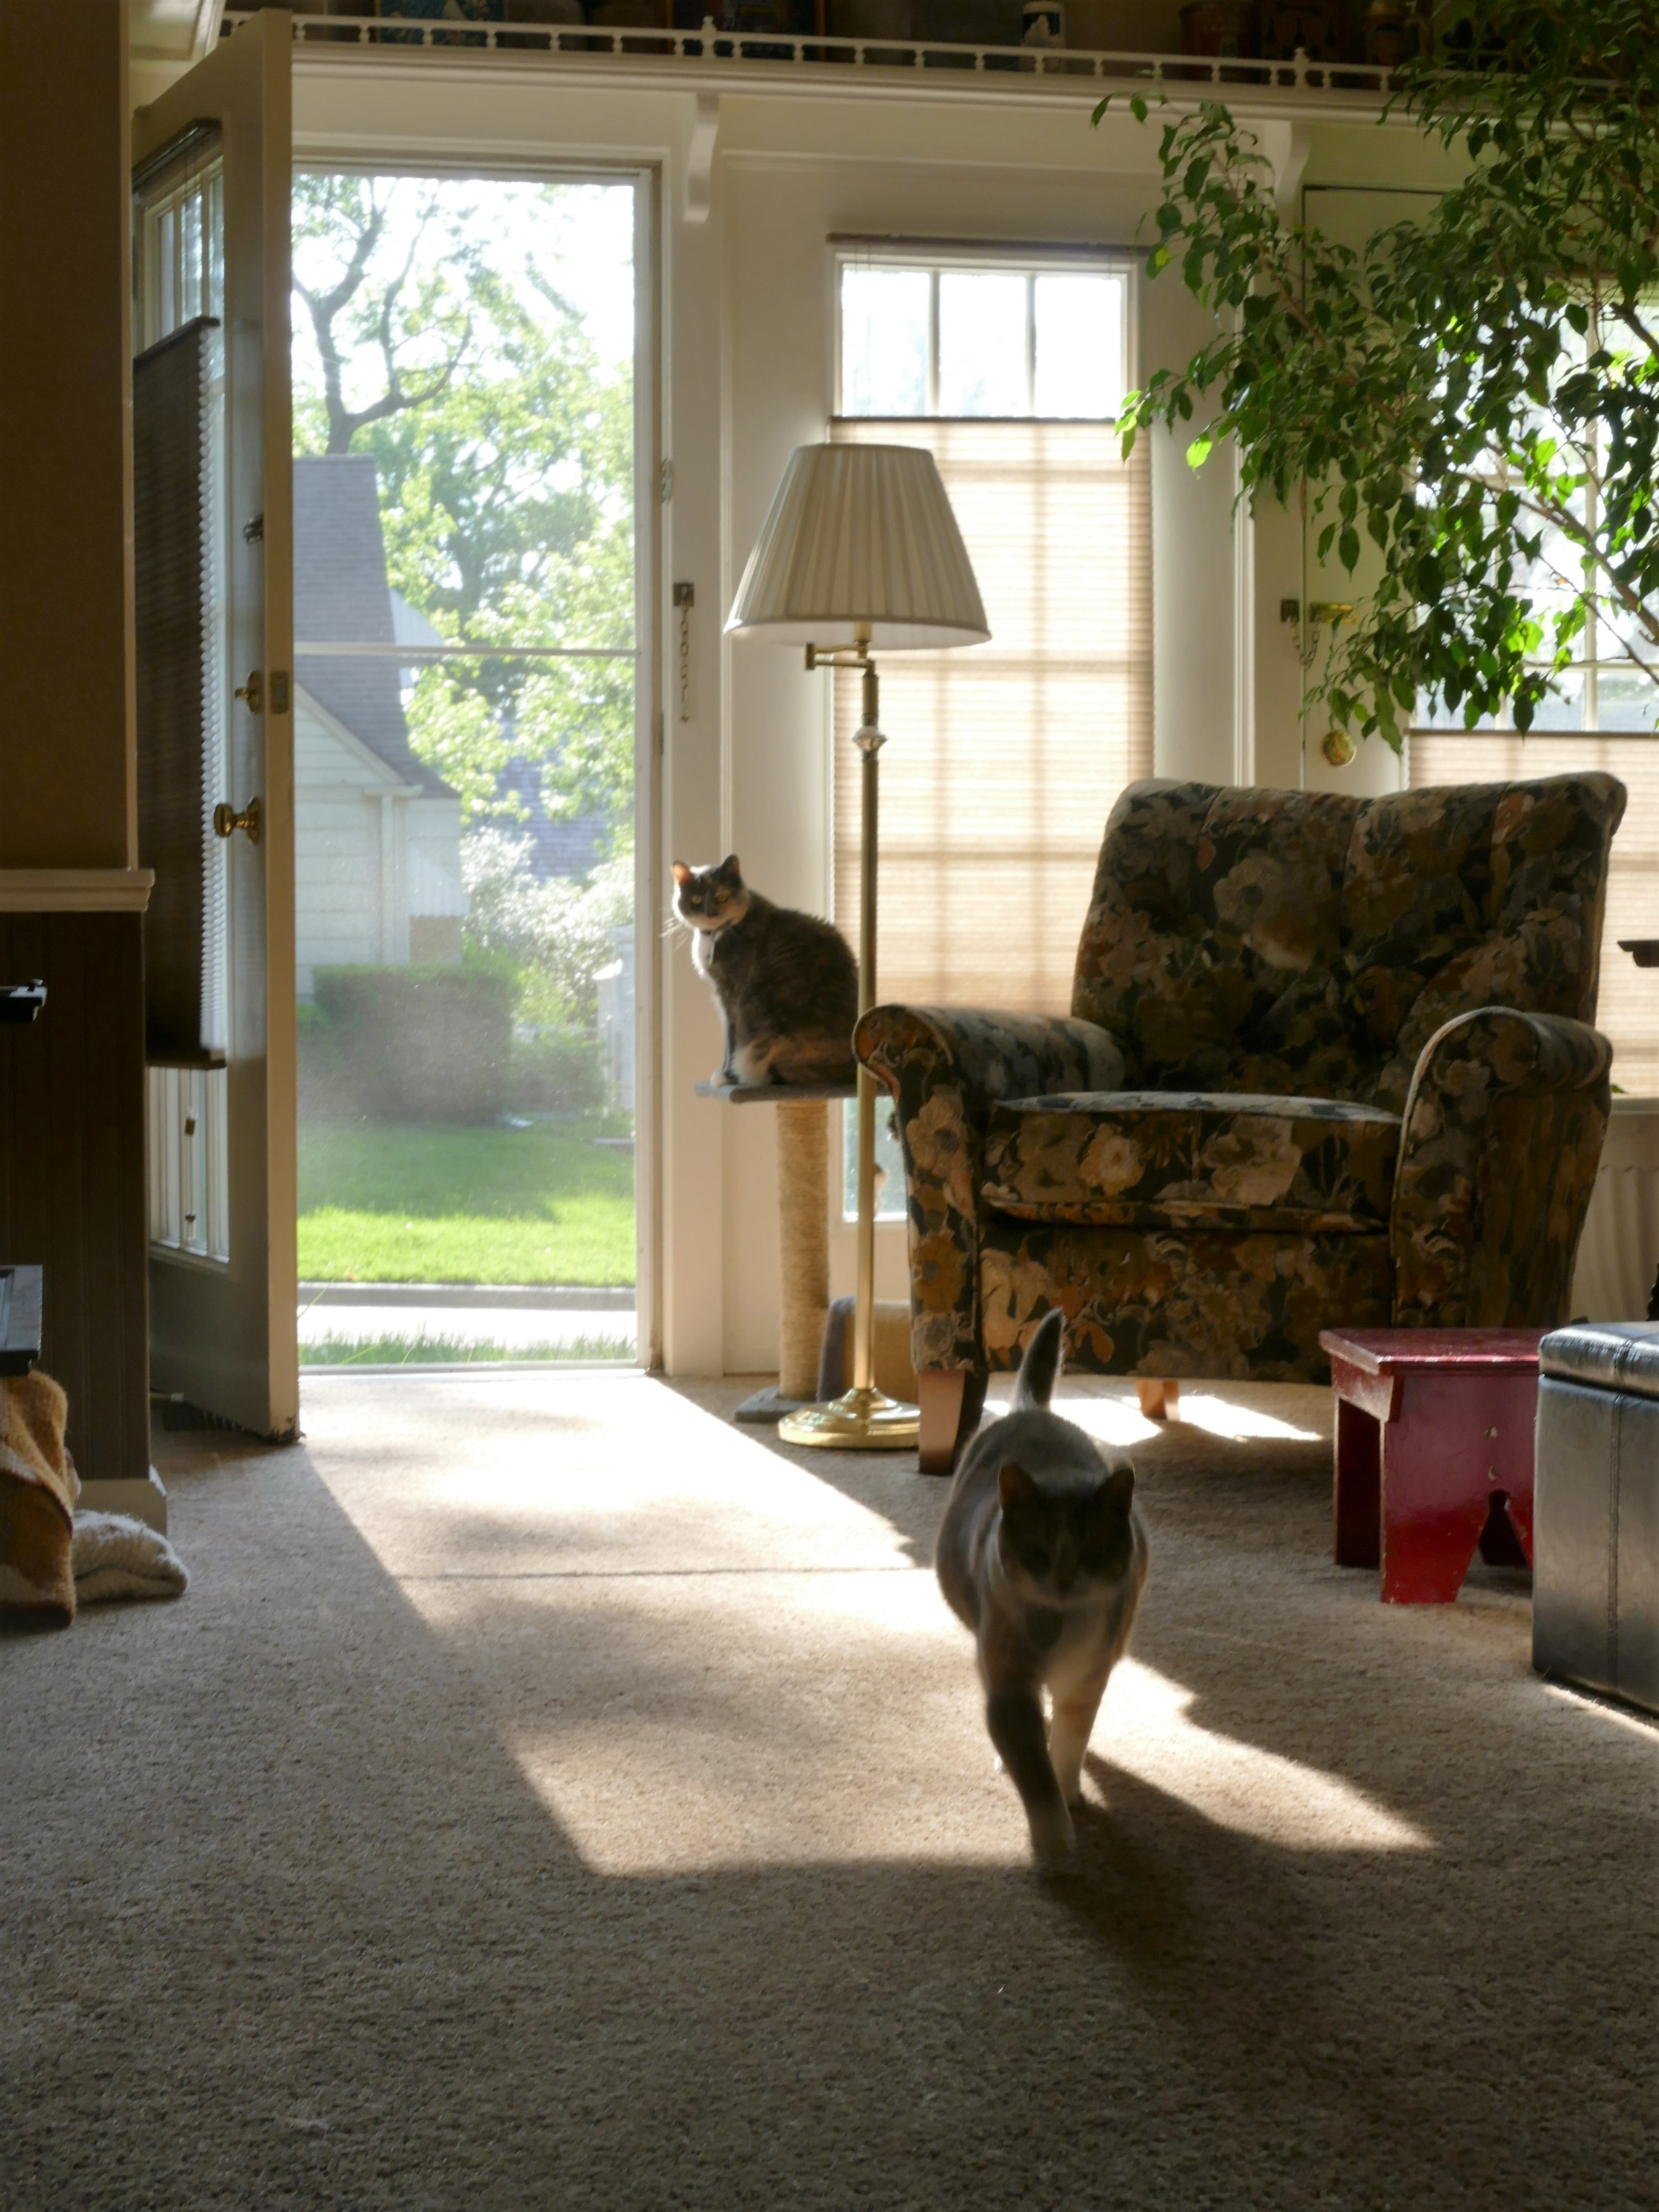 Look mom, the cats are alive, well, and enjoying the fresh air and sunshine.